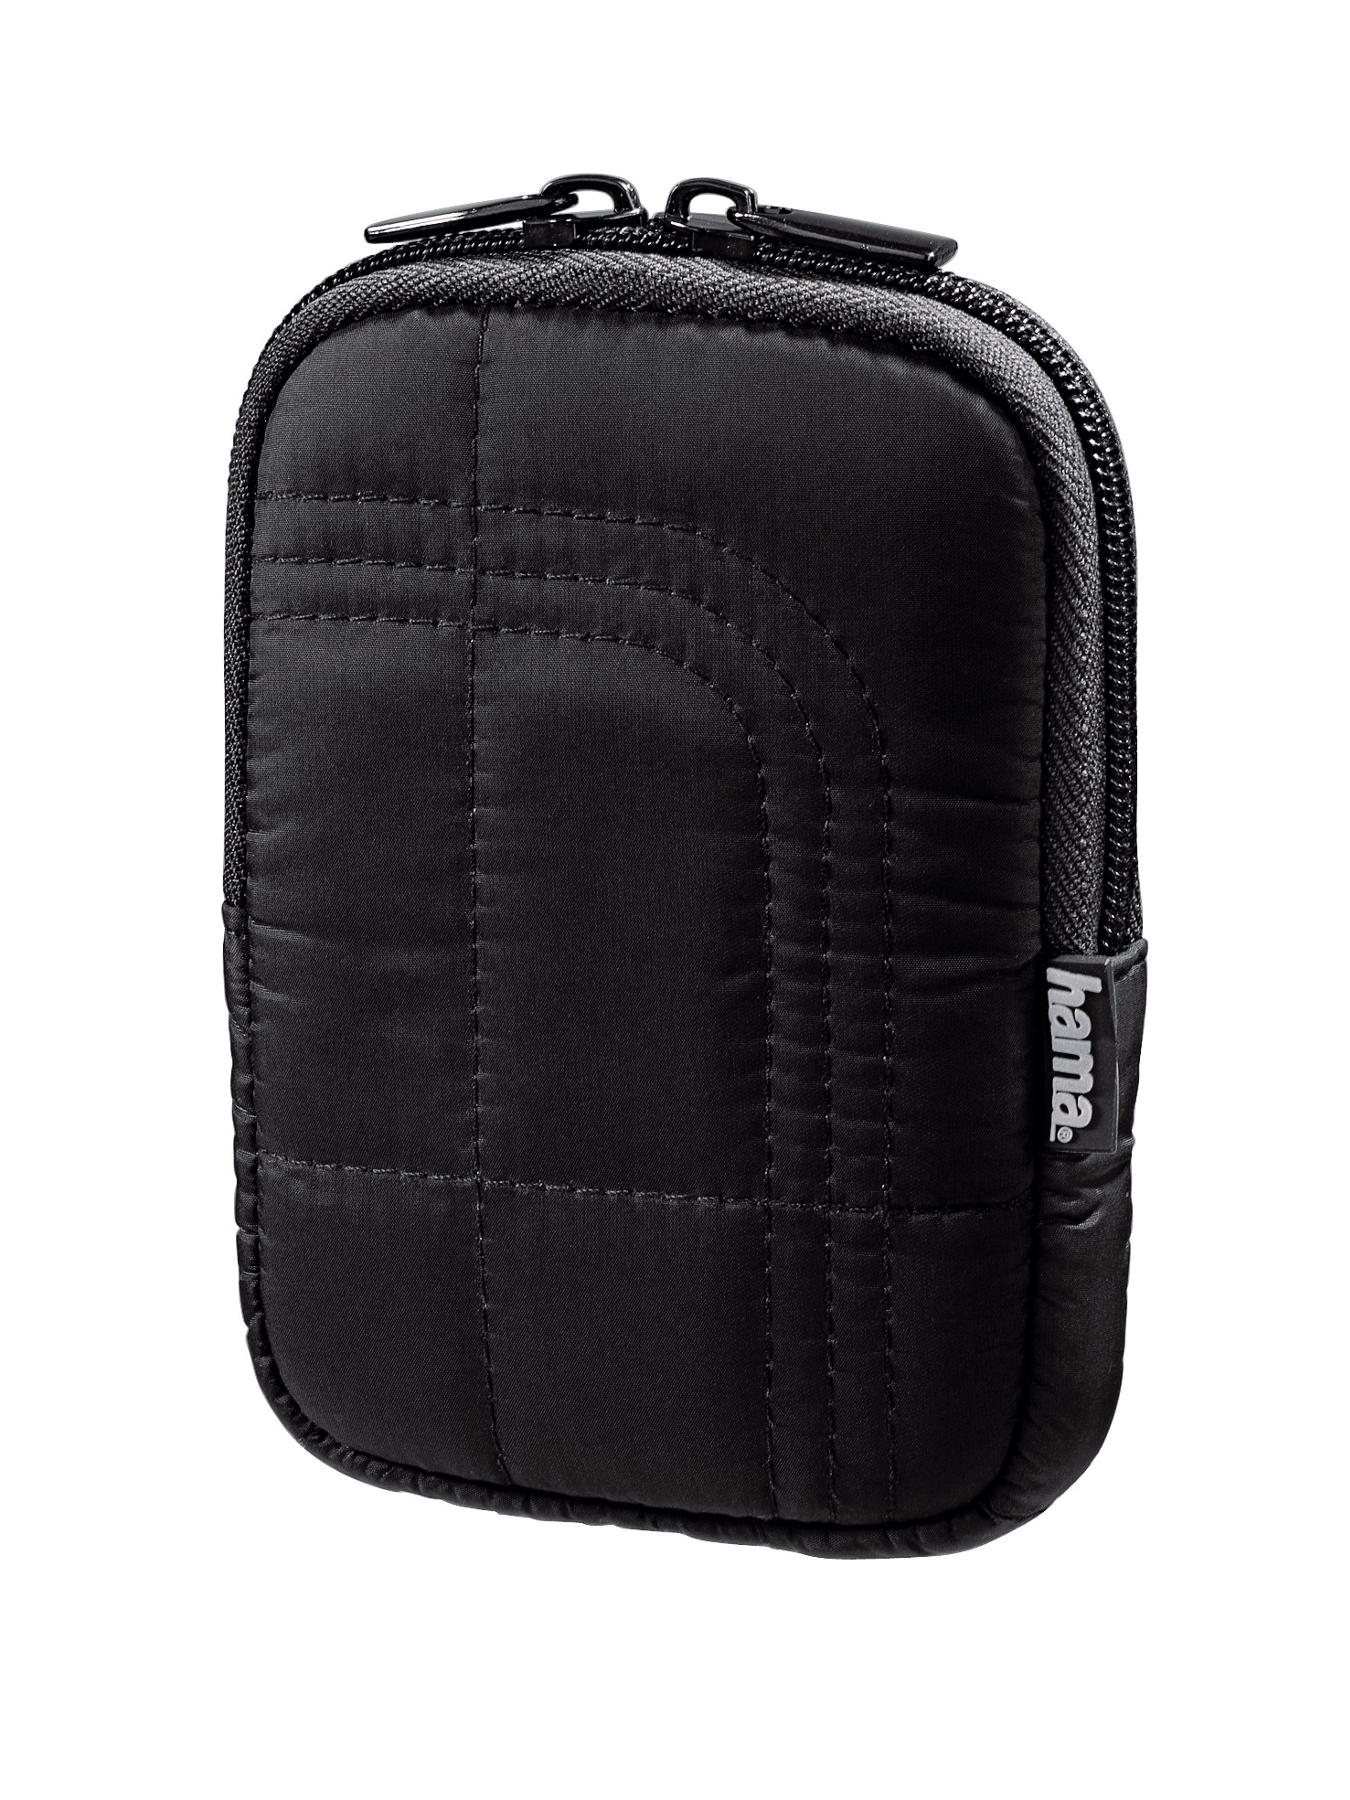 HAMA Fancy Memory 50C Camera Bag - Black at Very, from Littlewoods